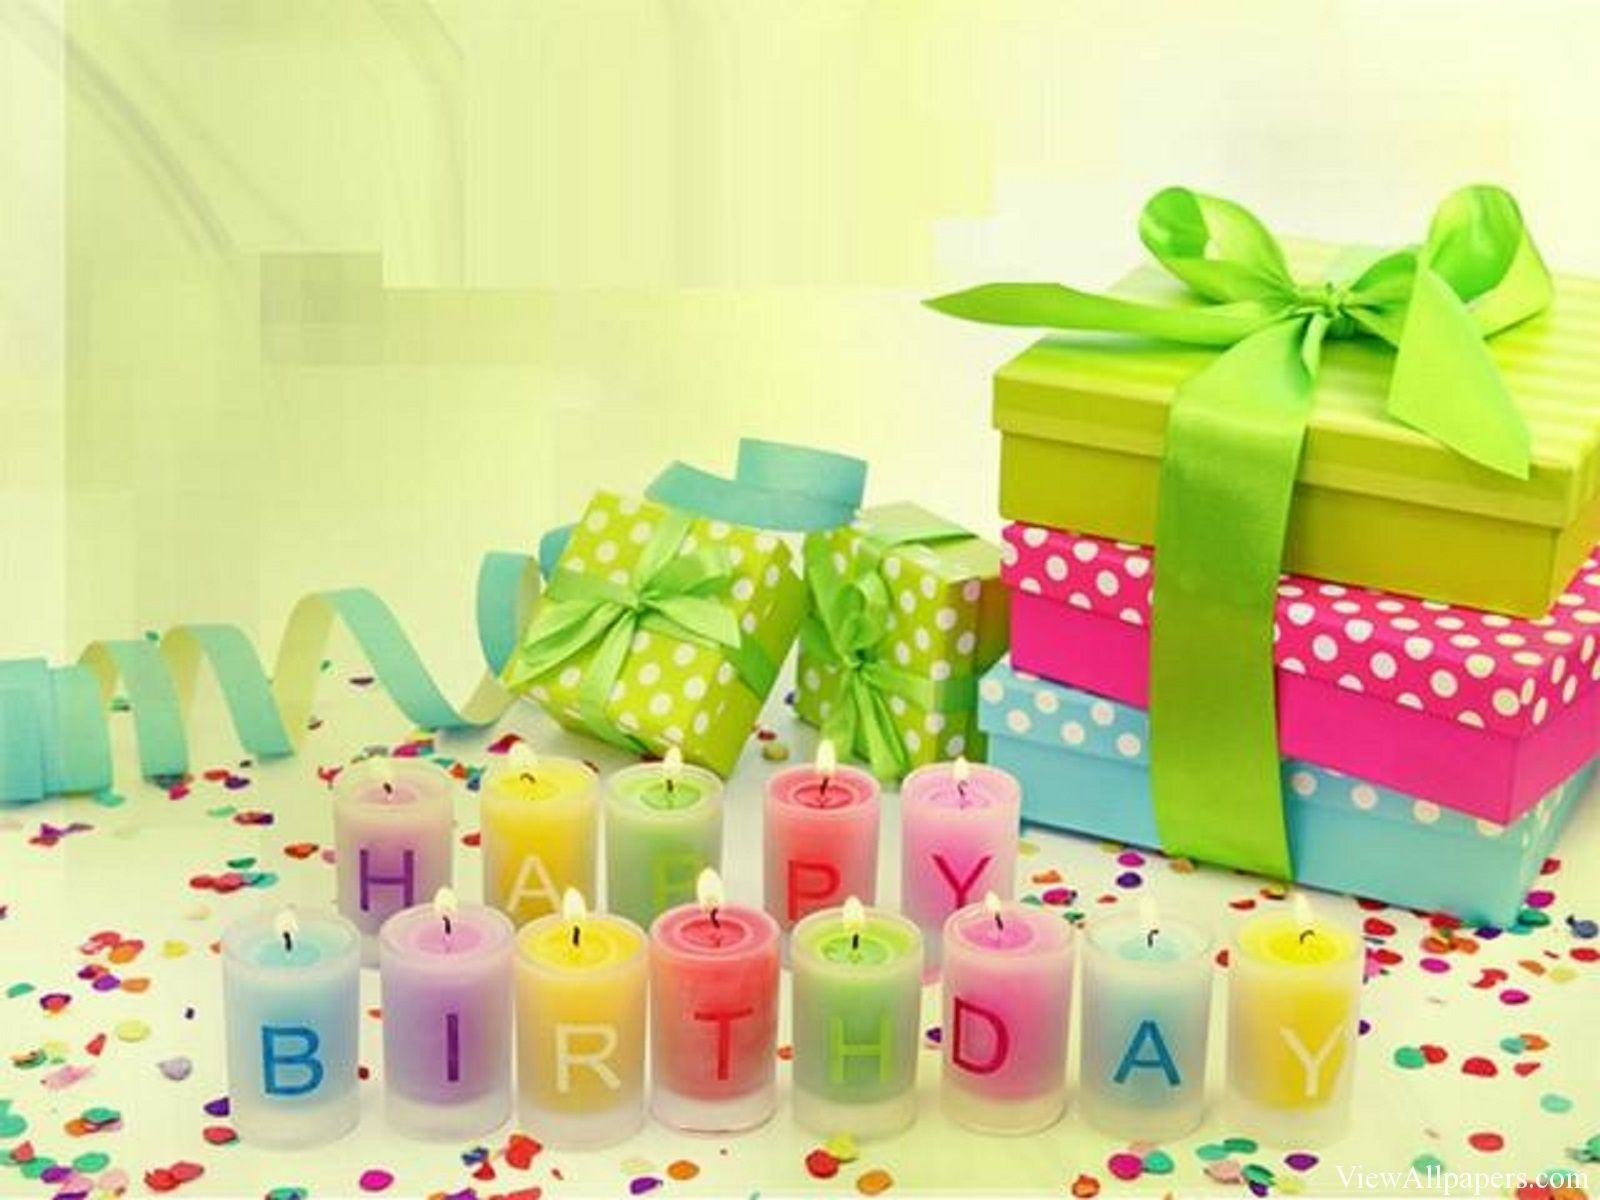 Cool Wallpaper Green Birthday - c491d17411eec67743417800bc68a256  Pictures_161965 .jpg